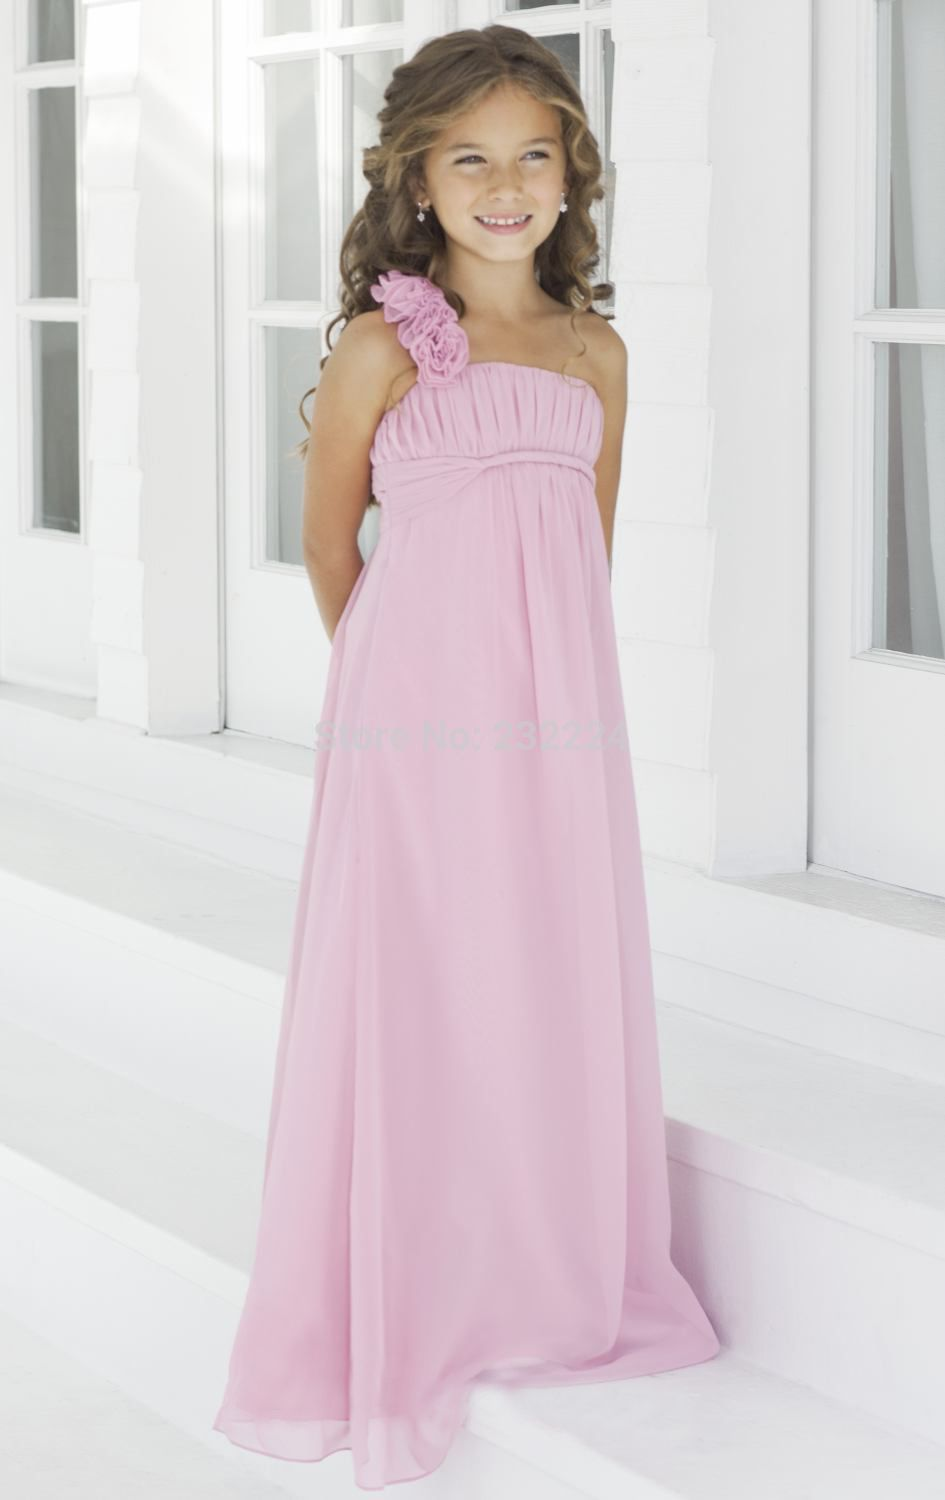 Lacy bridesmaid dress for little girl google search flower lacy bridesmaid dress for little girl google search ombrellifo Images